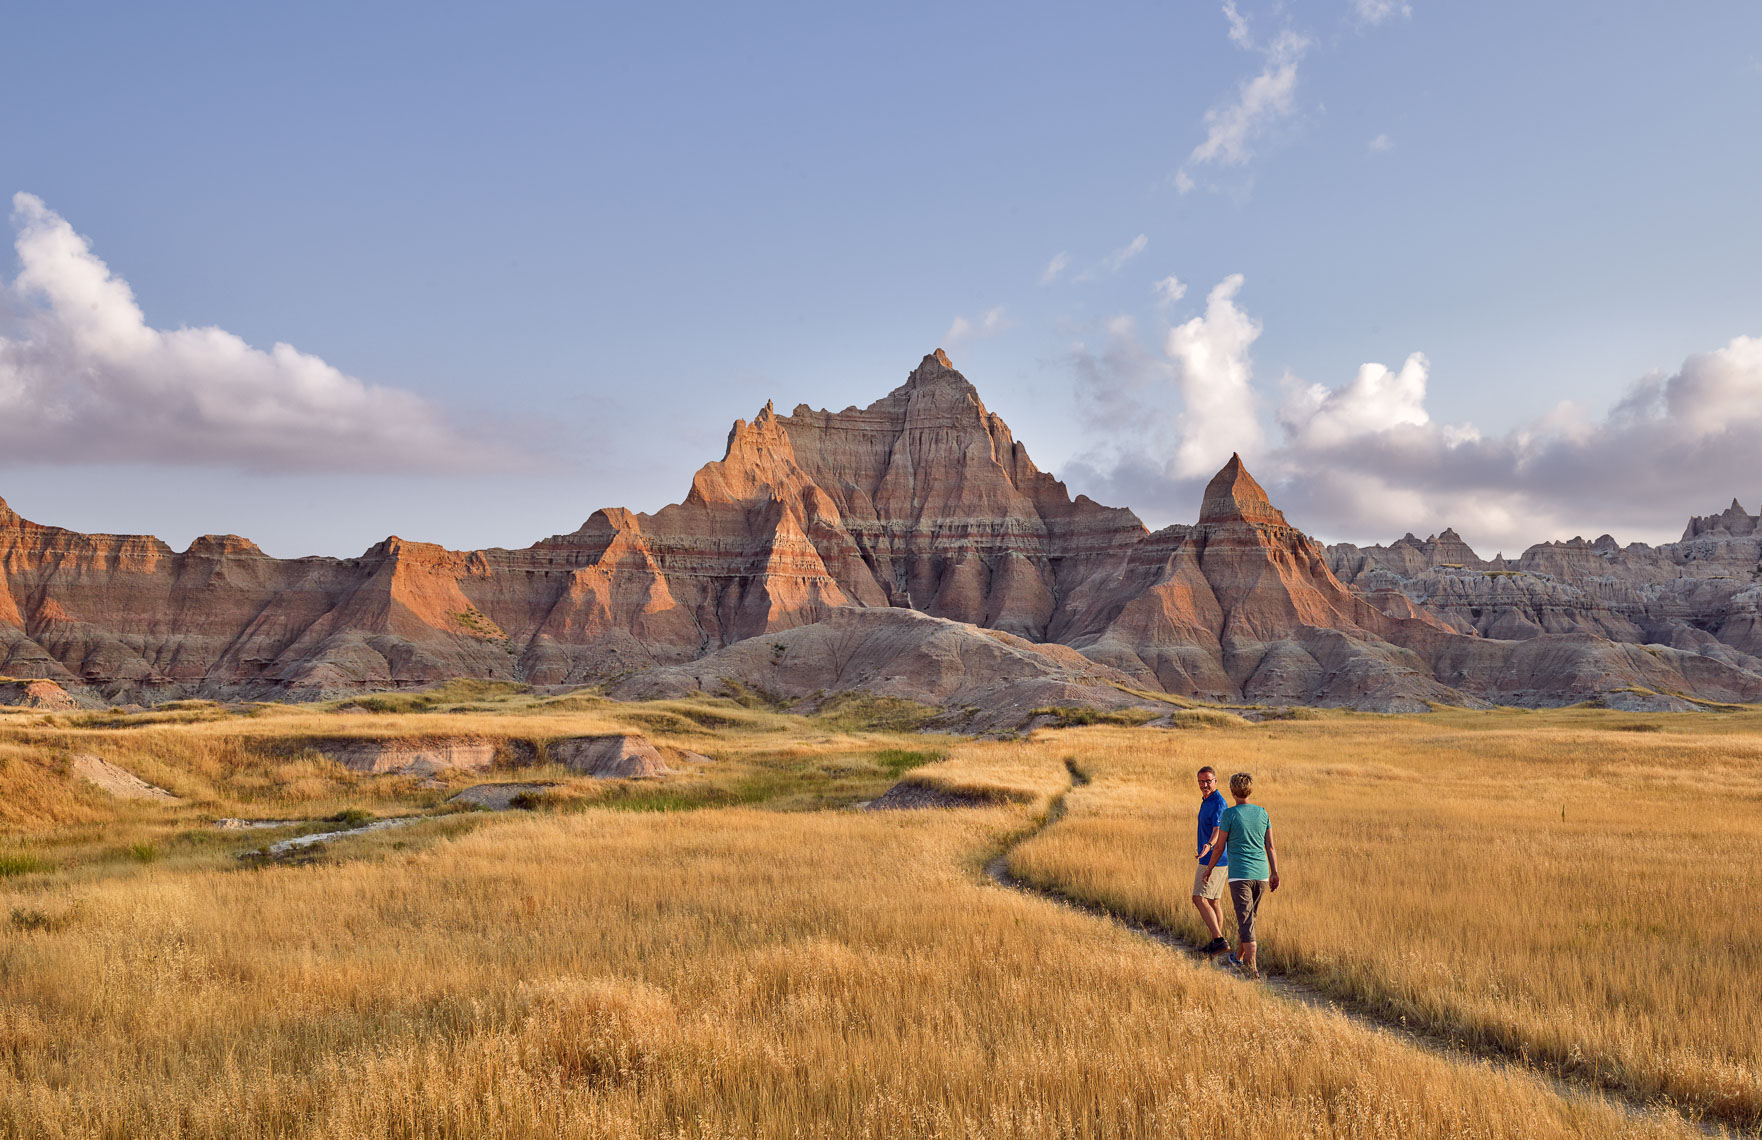 Kevin Steele - A couple hike along a trail in the Badlands